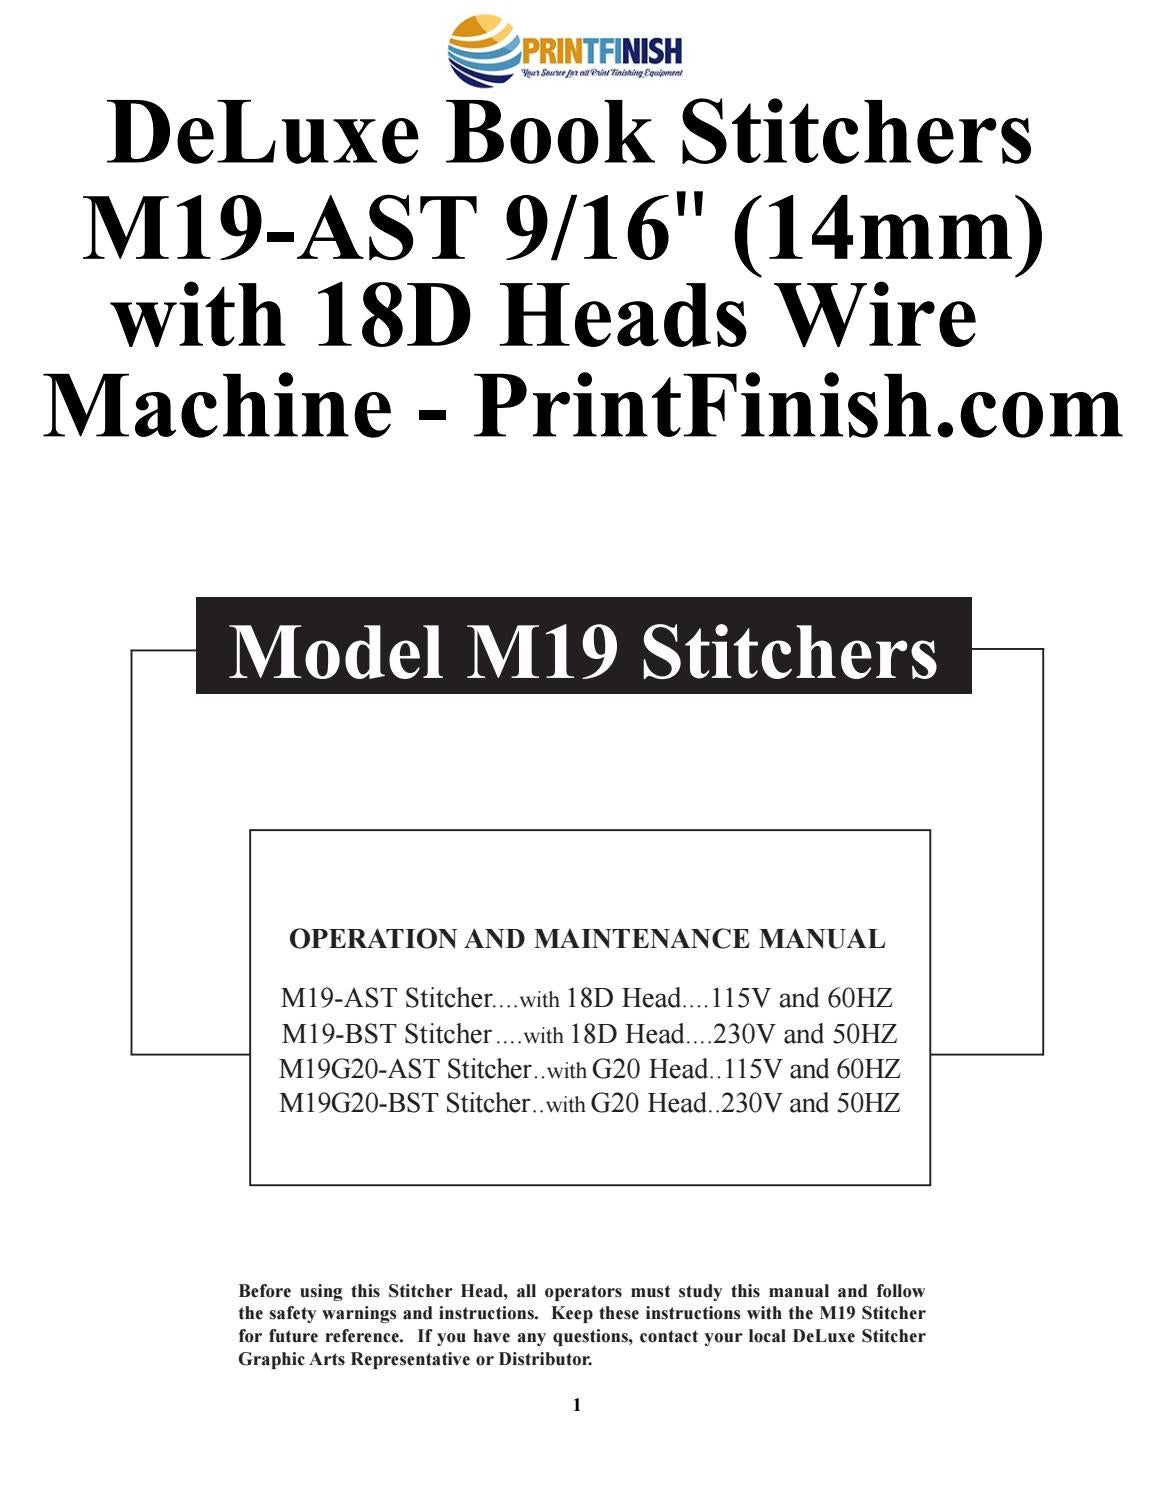 DeLuxe Book Stitchers M19-AST 9/16″ (14mm) with 18D Heads Wire Machine -  Printfinish.com by Print Finish - issuu